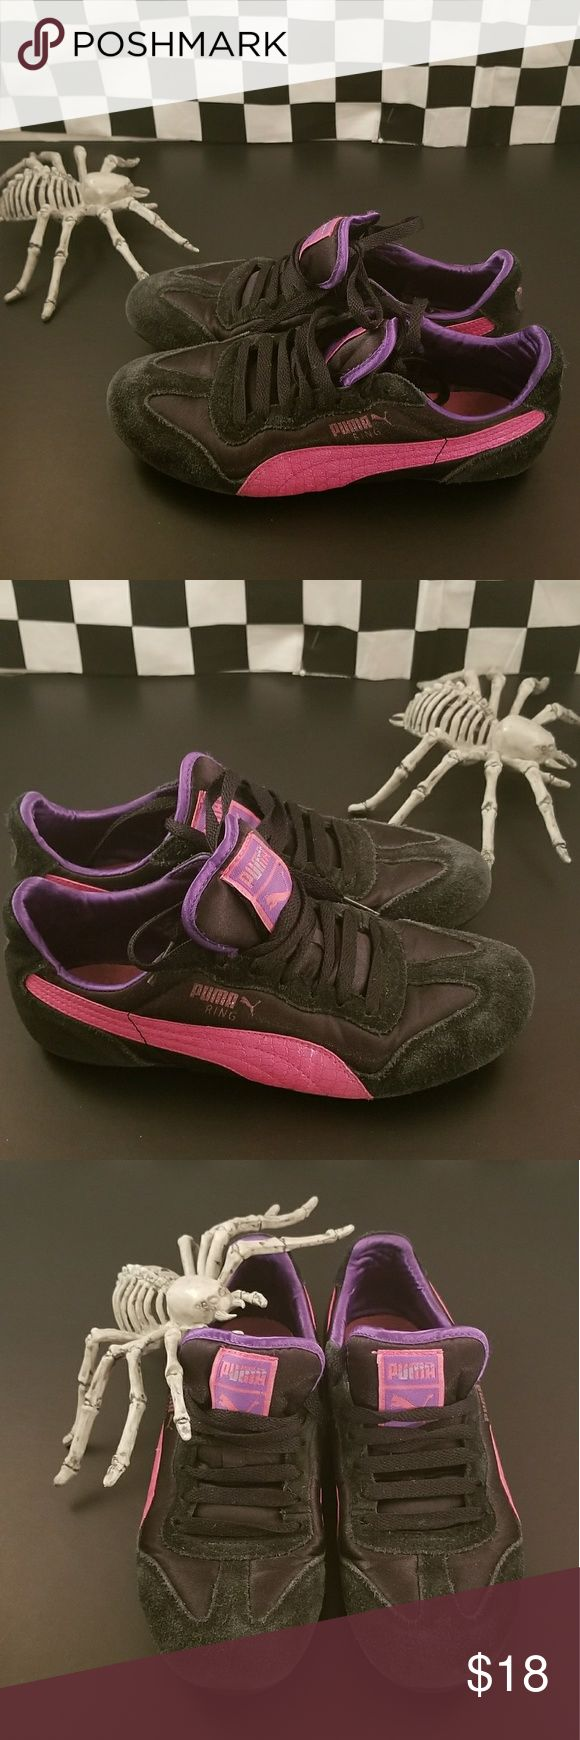 Pink & Purple Pumas A grrly pair of running kicks to die for! ☠☠☠  Size: 6 Brand: Puma In good condition. Wear around the front and inner sole (see photos). Puma Shoes Athletic Shoes